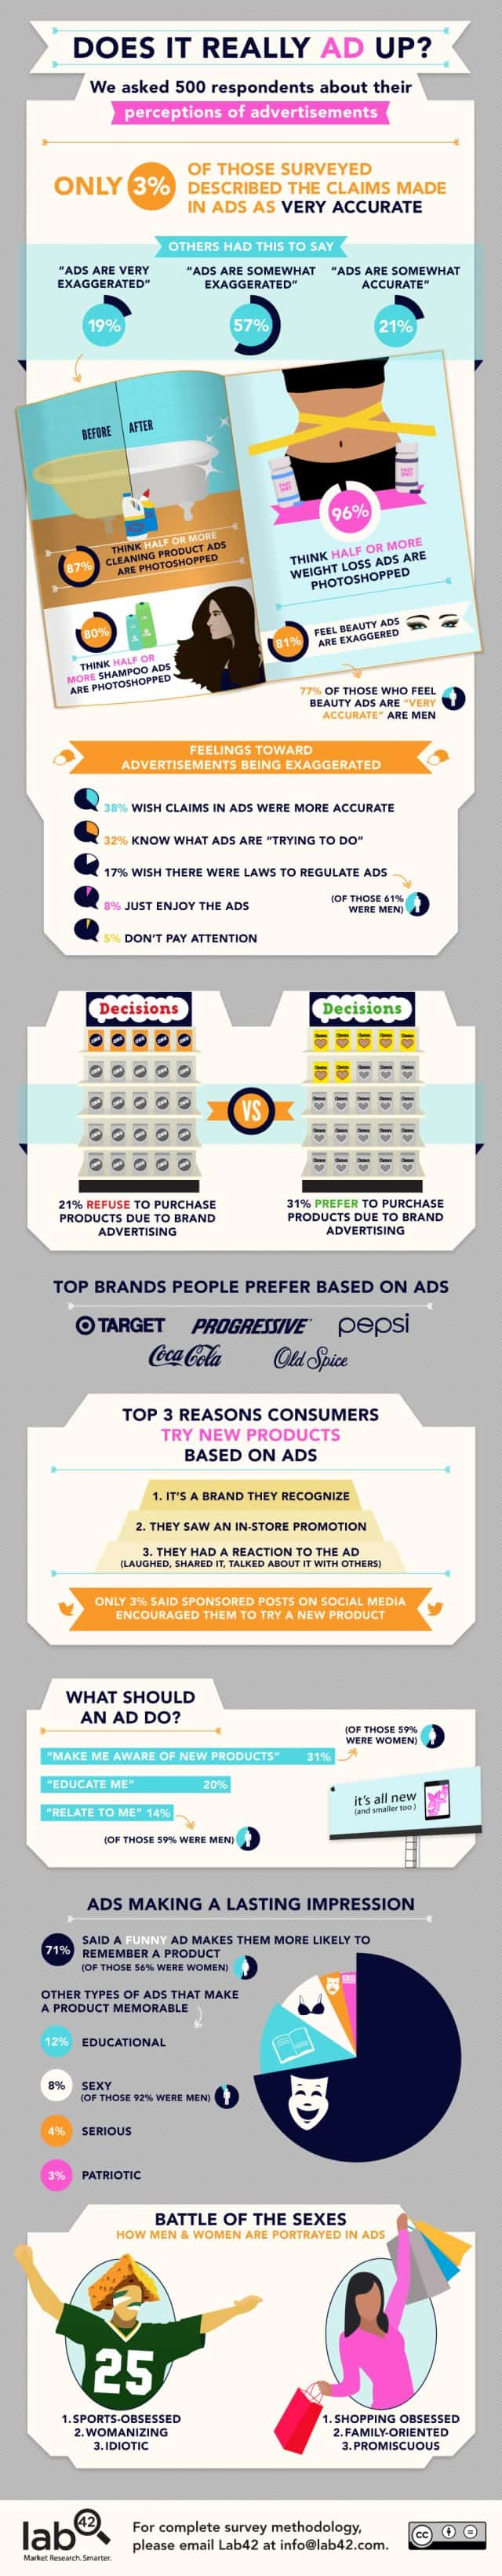 Does It Really Ad Up? [Infographic]